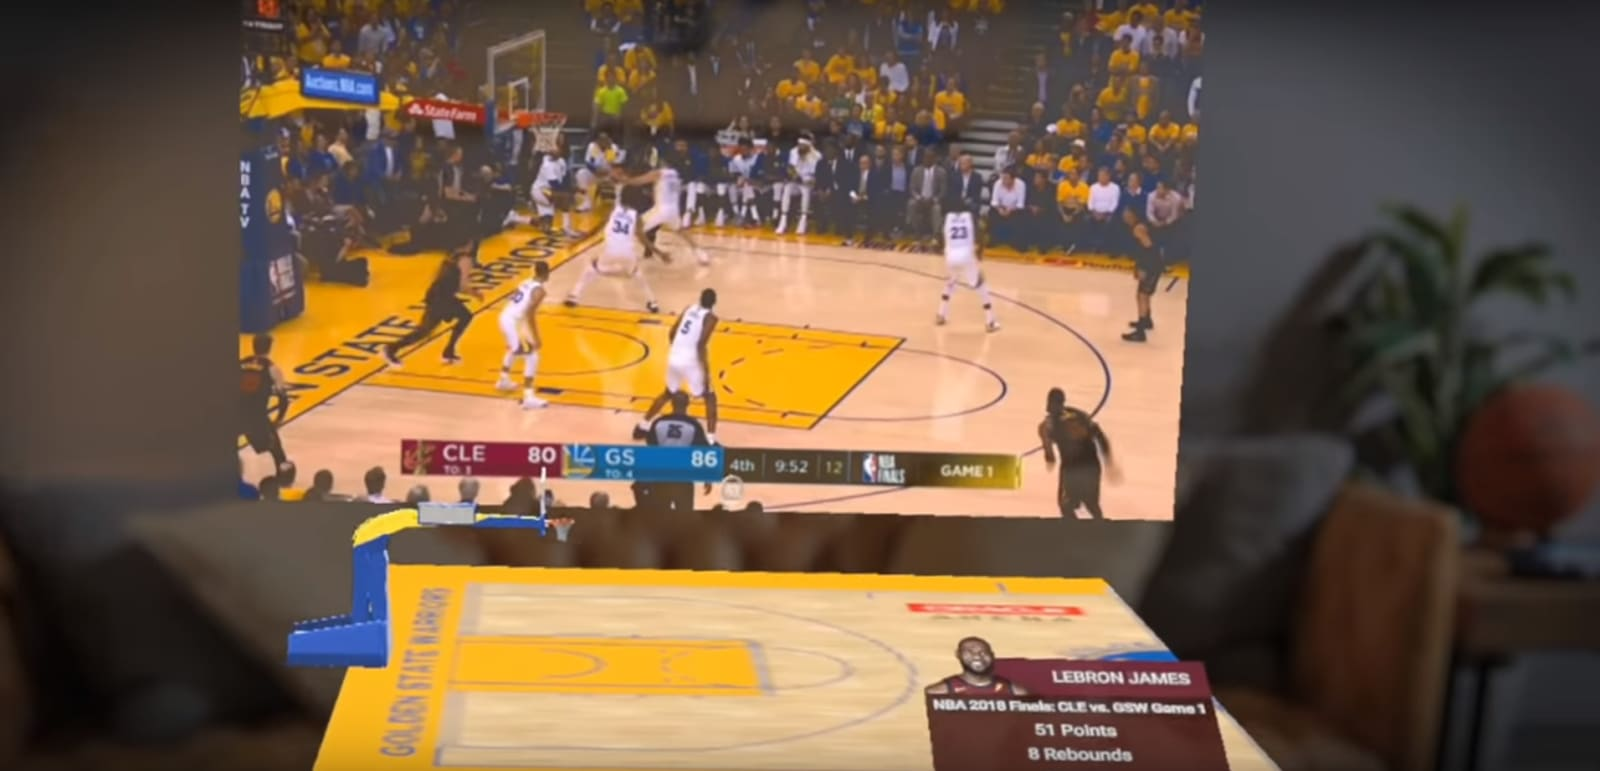 NBA's Magic Leap app lets you watch basketball in augmented reality